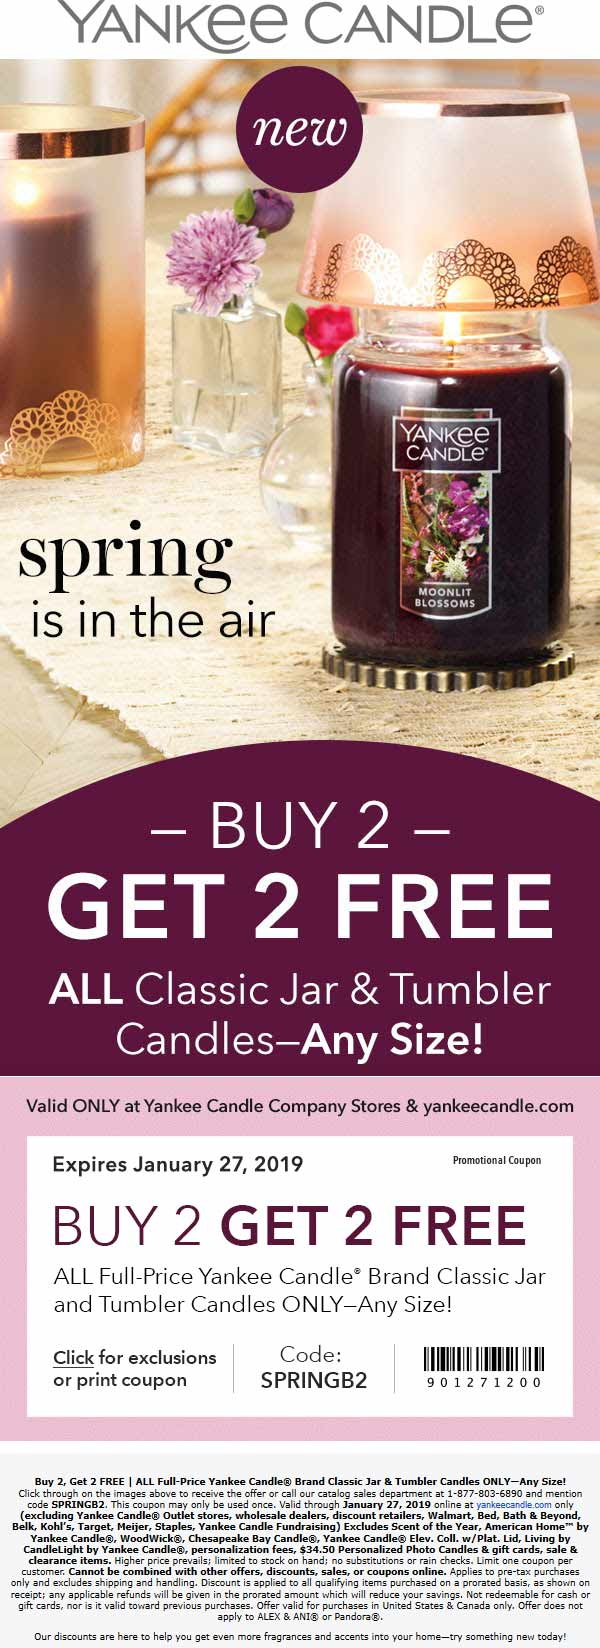 Yankee Candle coupons & promo code for [July 2020]